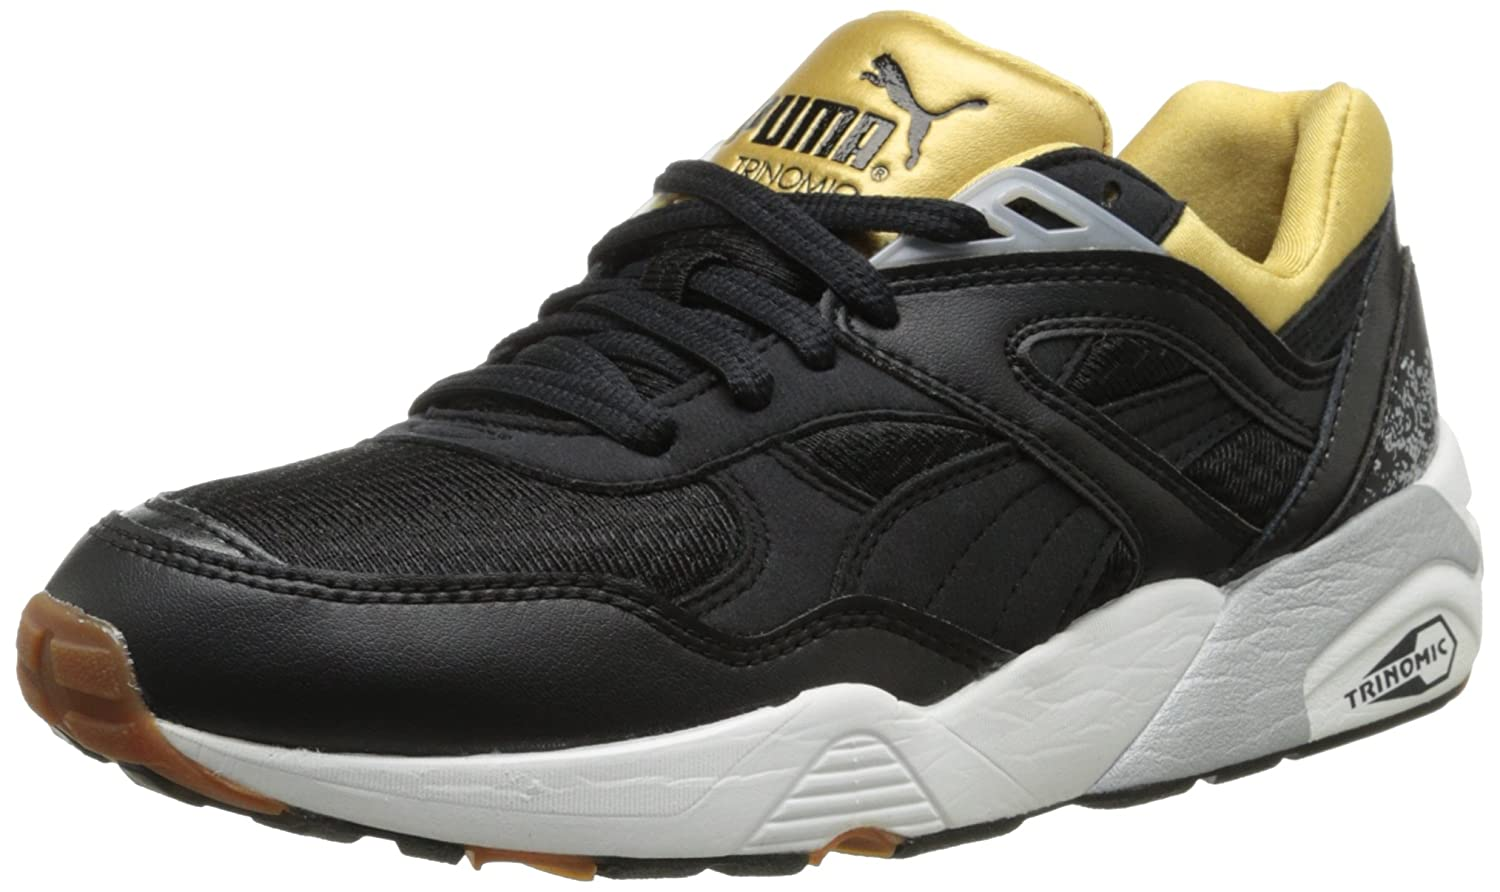 Puma Trinomic R698 shoes black